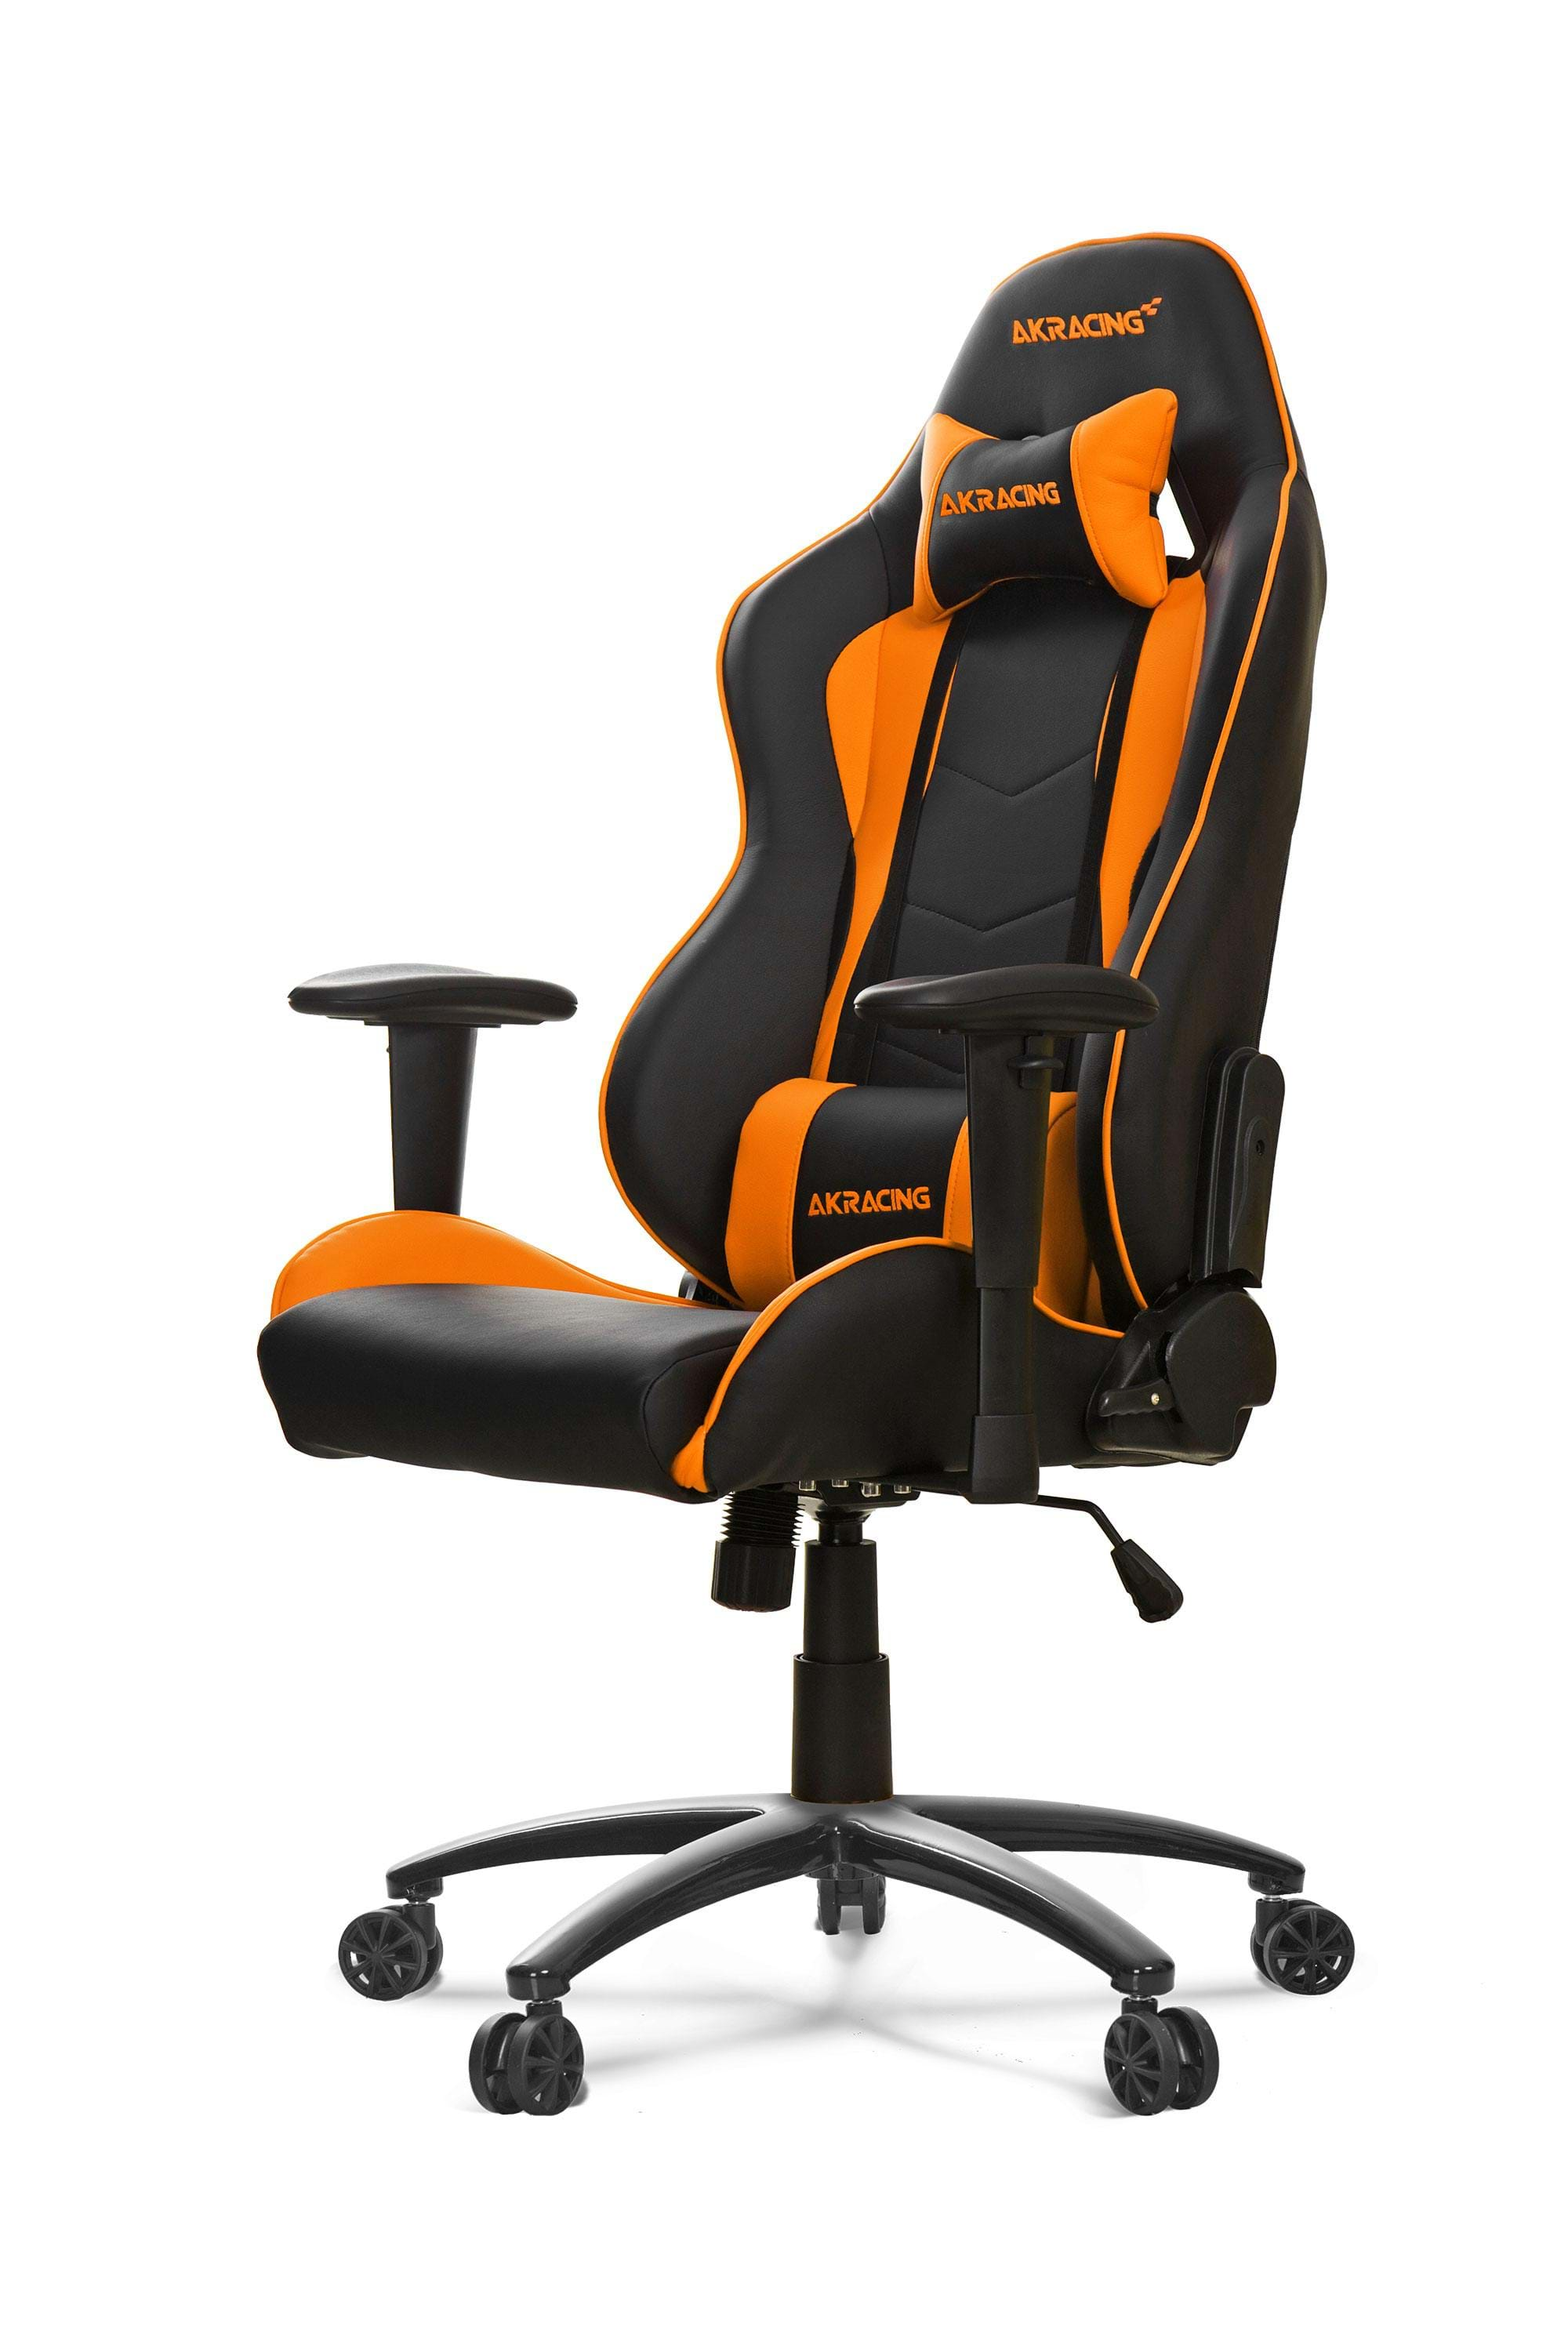 akracing nitro gaming stuhl orange gaming stuhl schwarz orange pu leder bis zu 150 kg. Black Bedroom Furniture Sets. Home Design Ideas